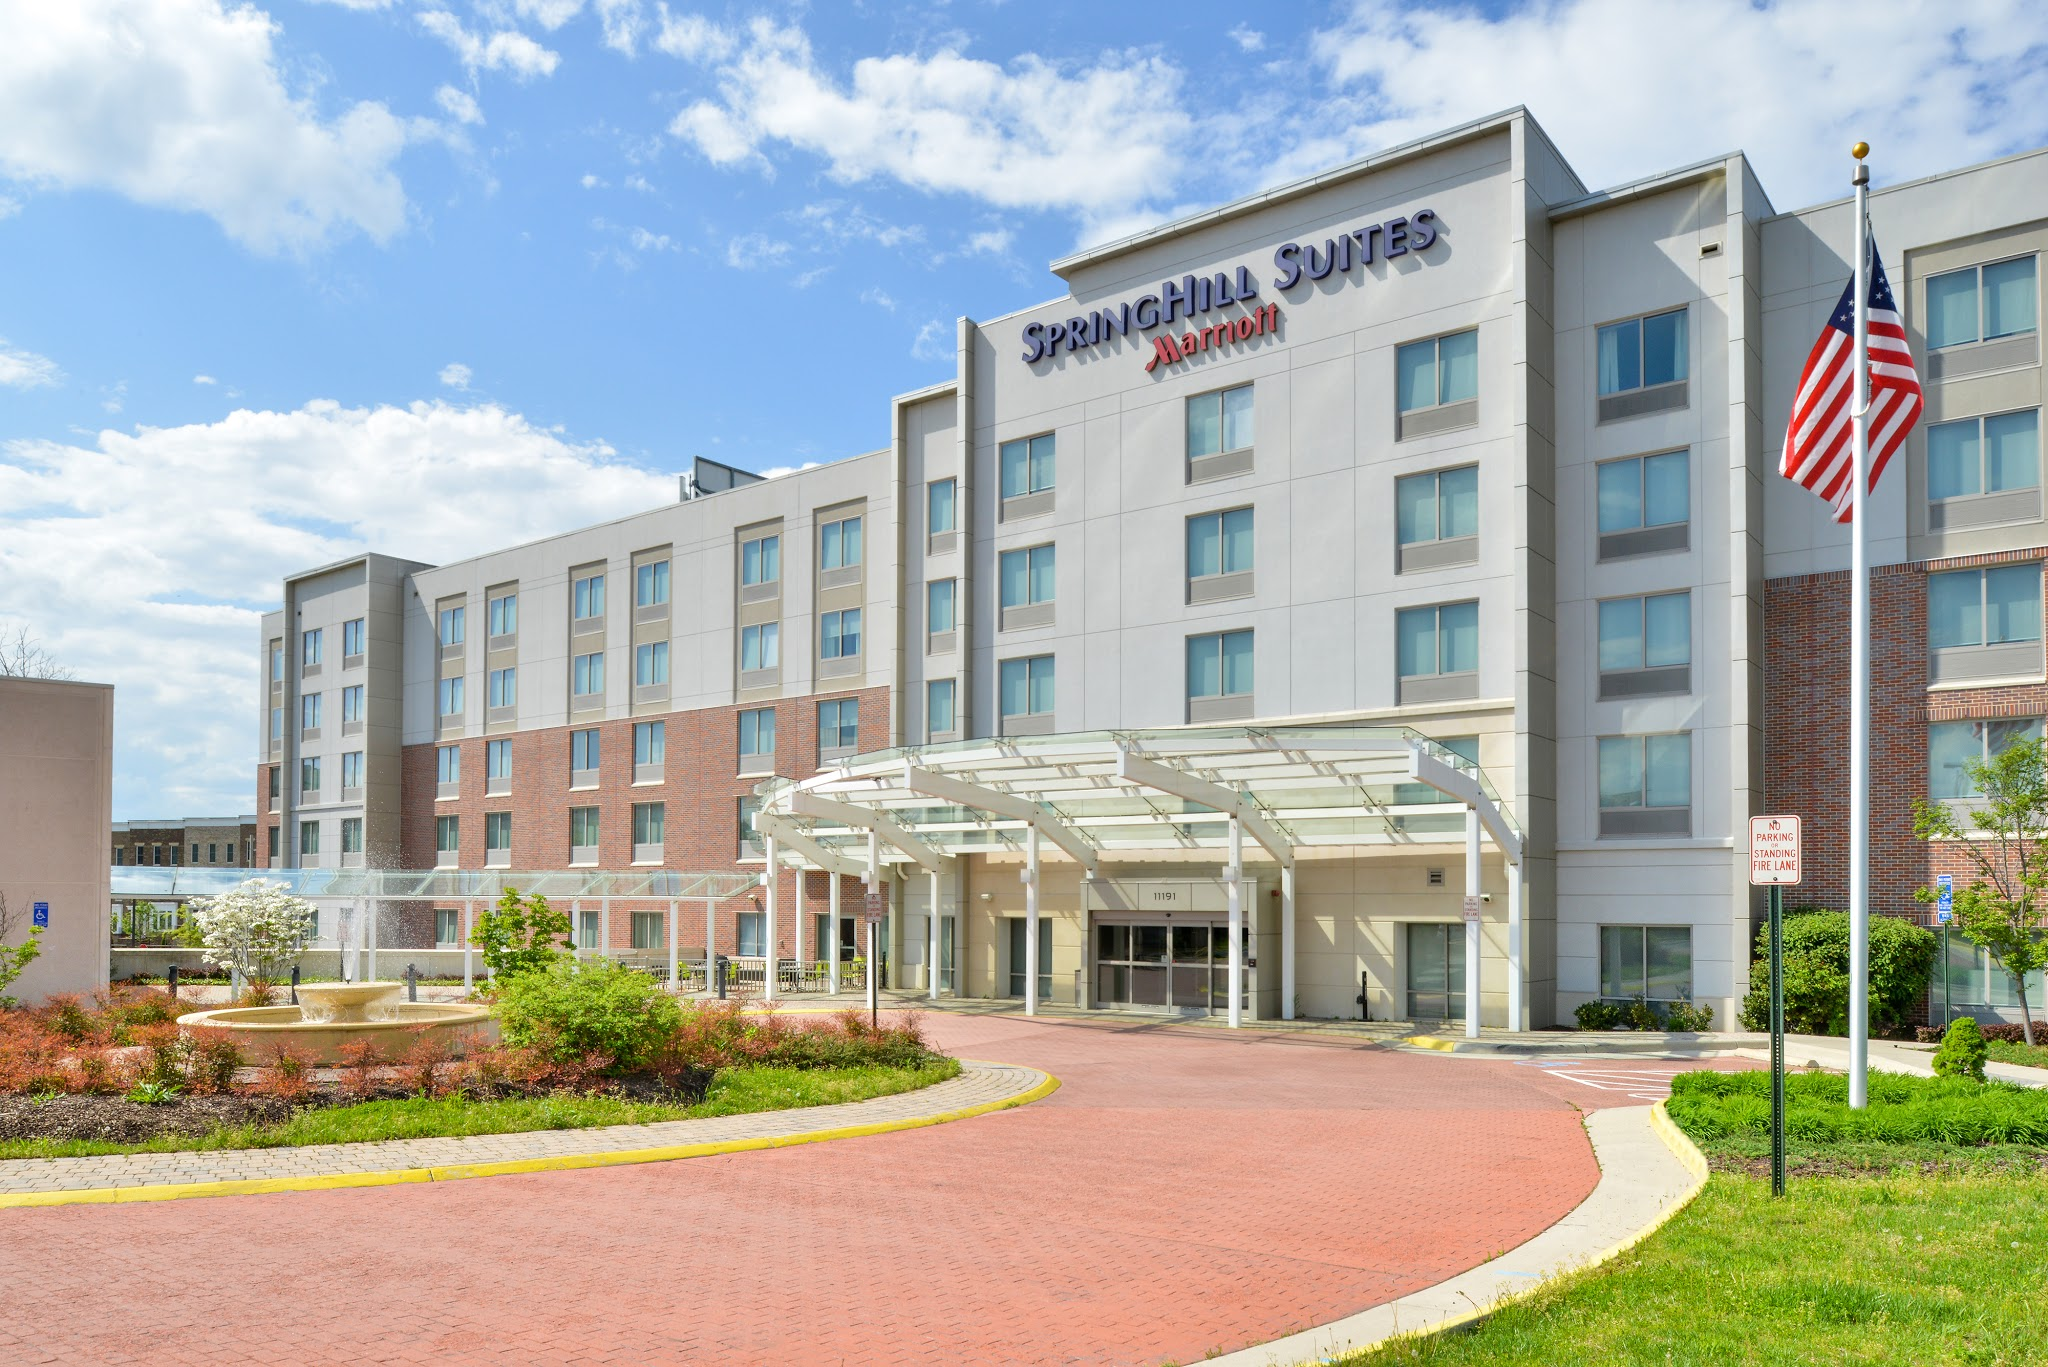 SpringHill Suites by Marriott Fairfax Fair Oaks image 4